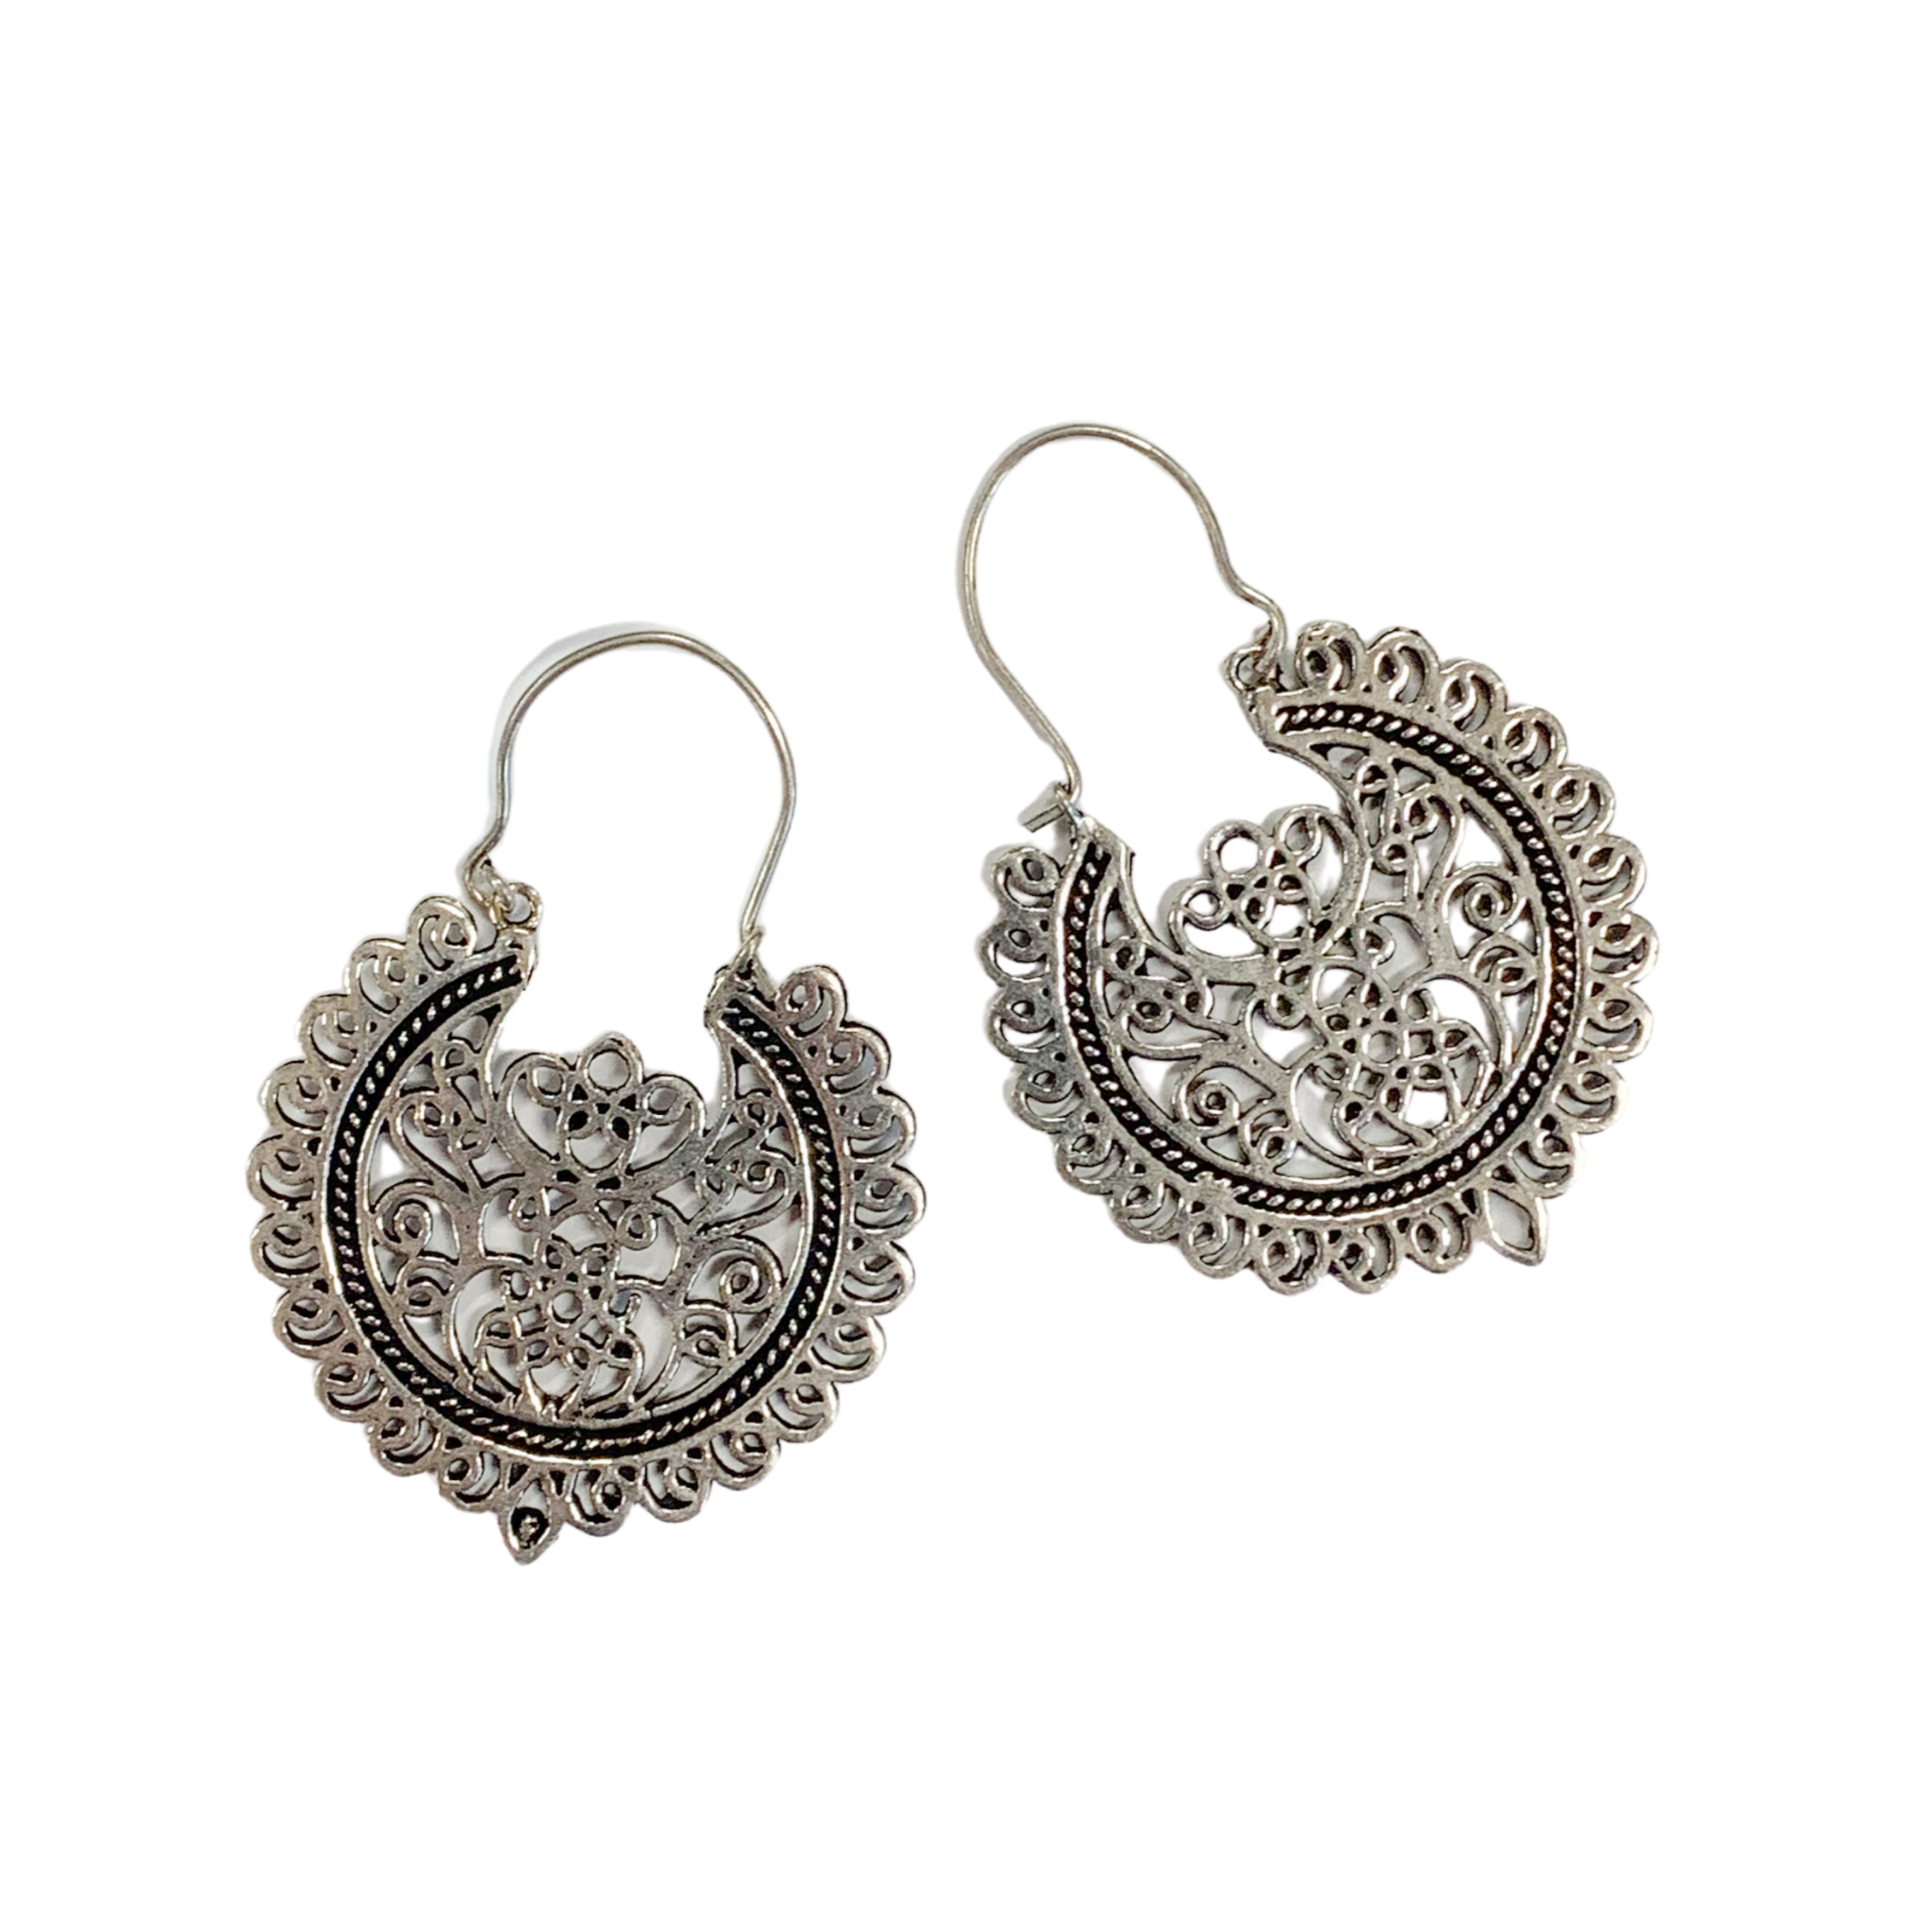 Silver & Lace Earrings